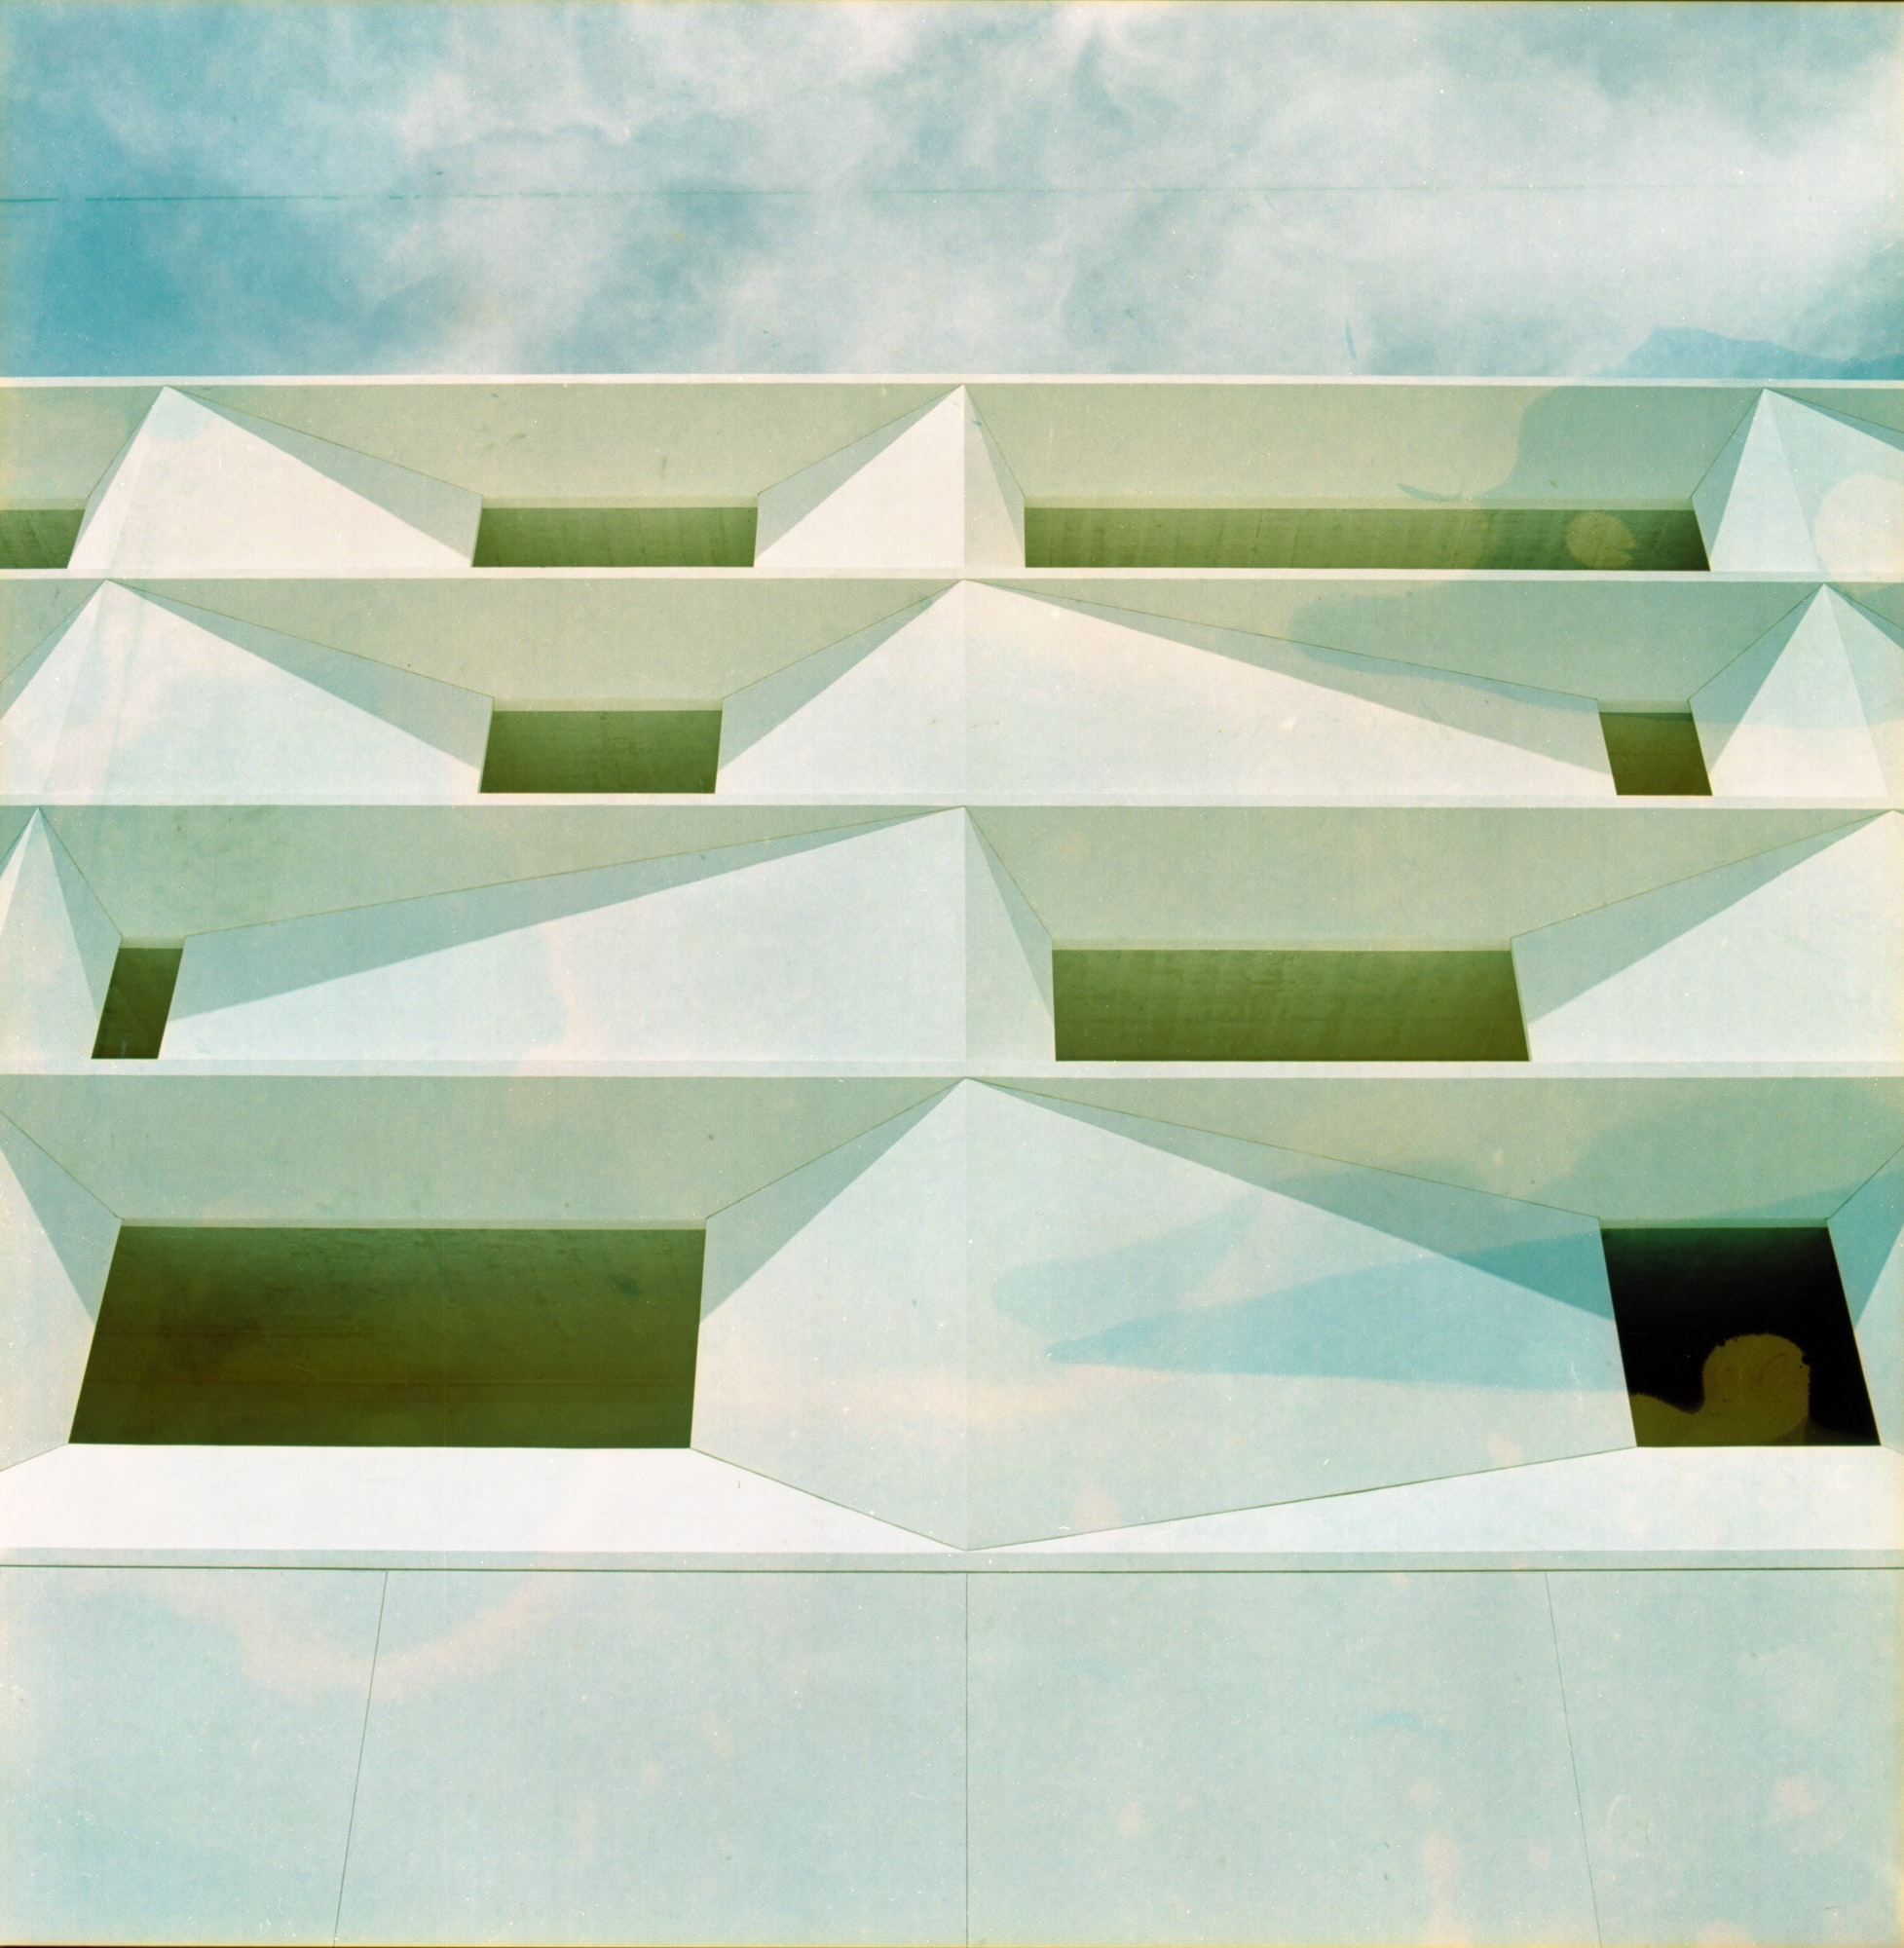 Modernist design white building with windows from below and blue sky with clouds